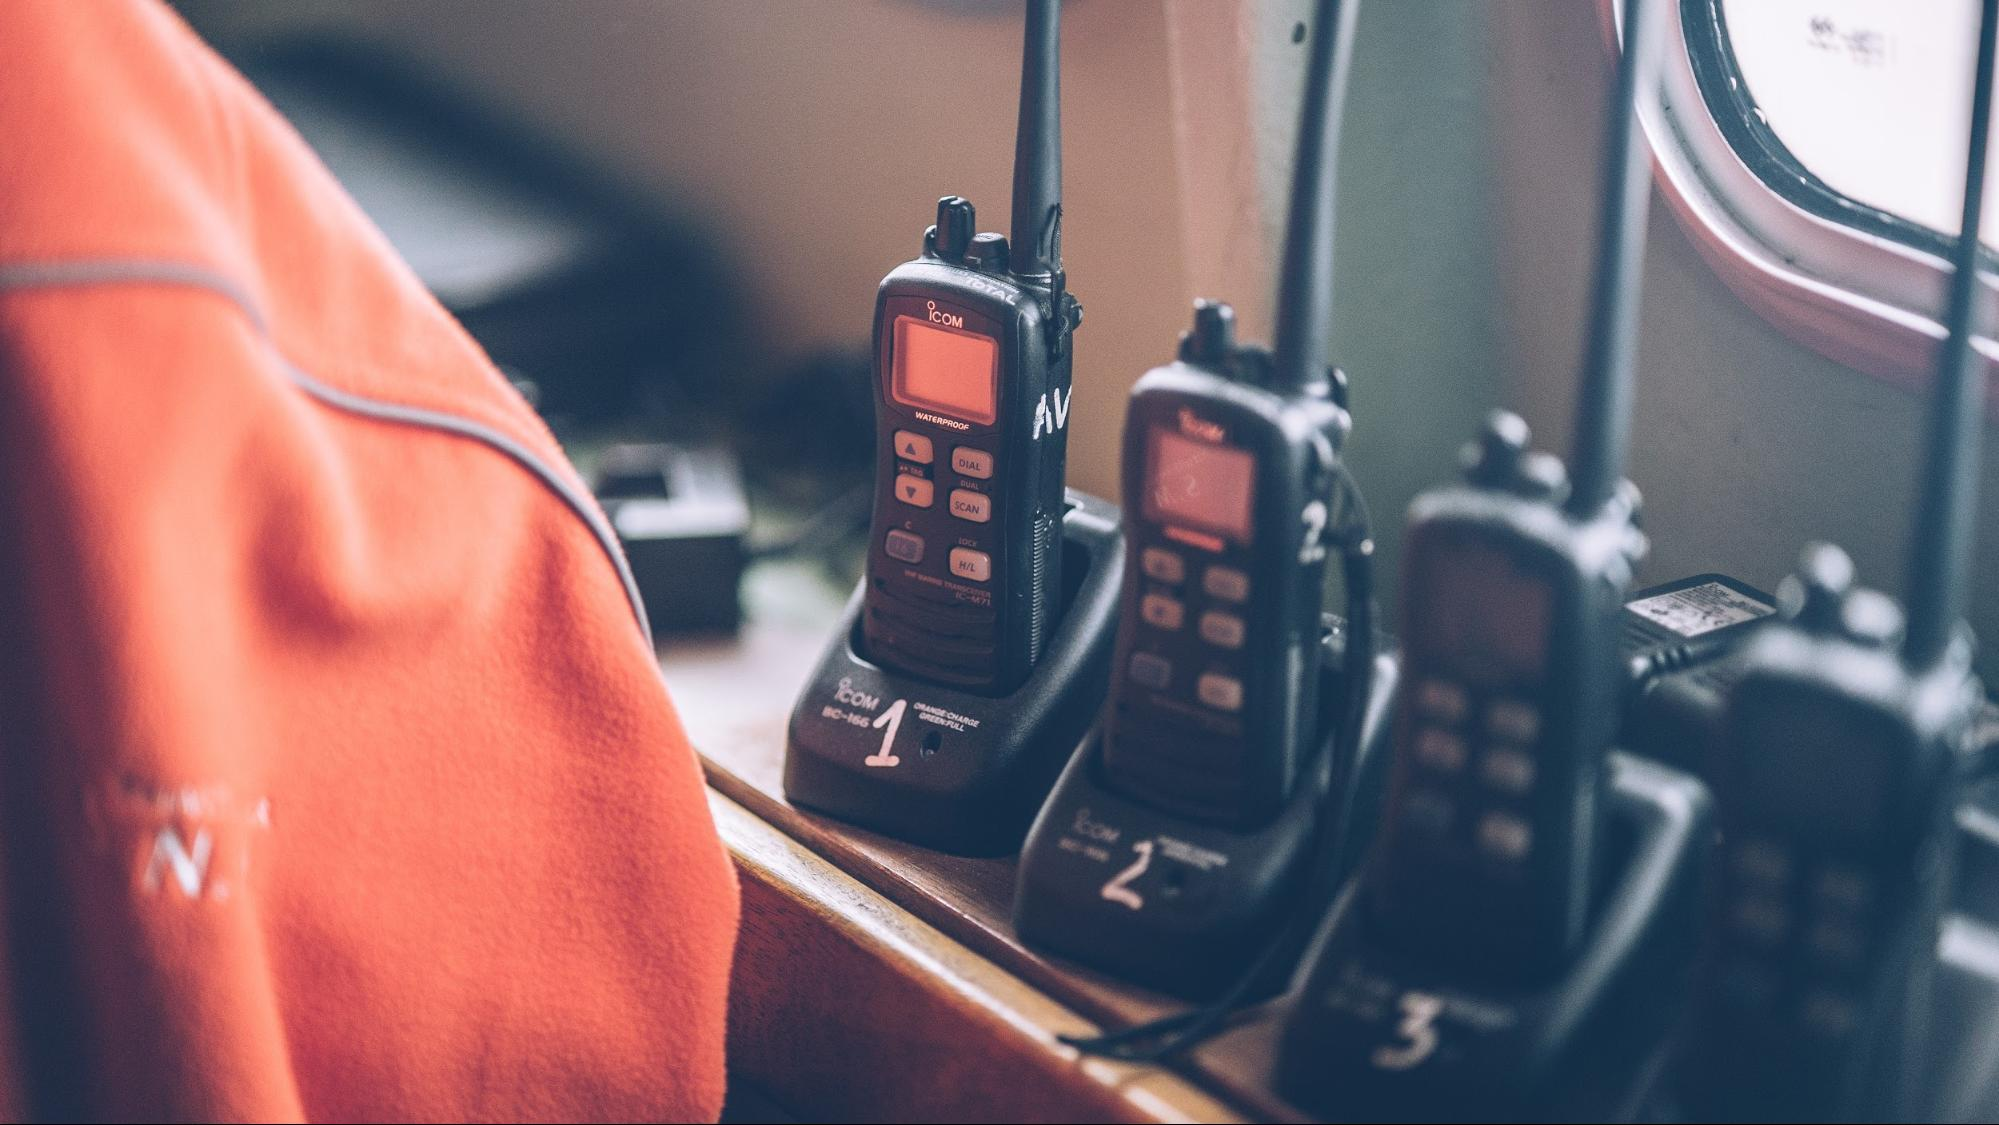 Ultimate Buyers' Guide to find the Best Walkie Talkies for Hunting